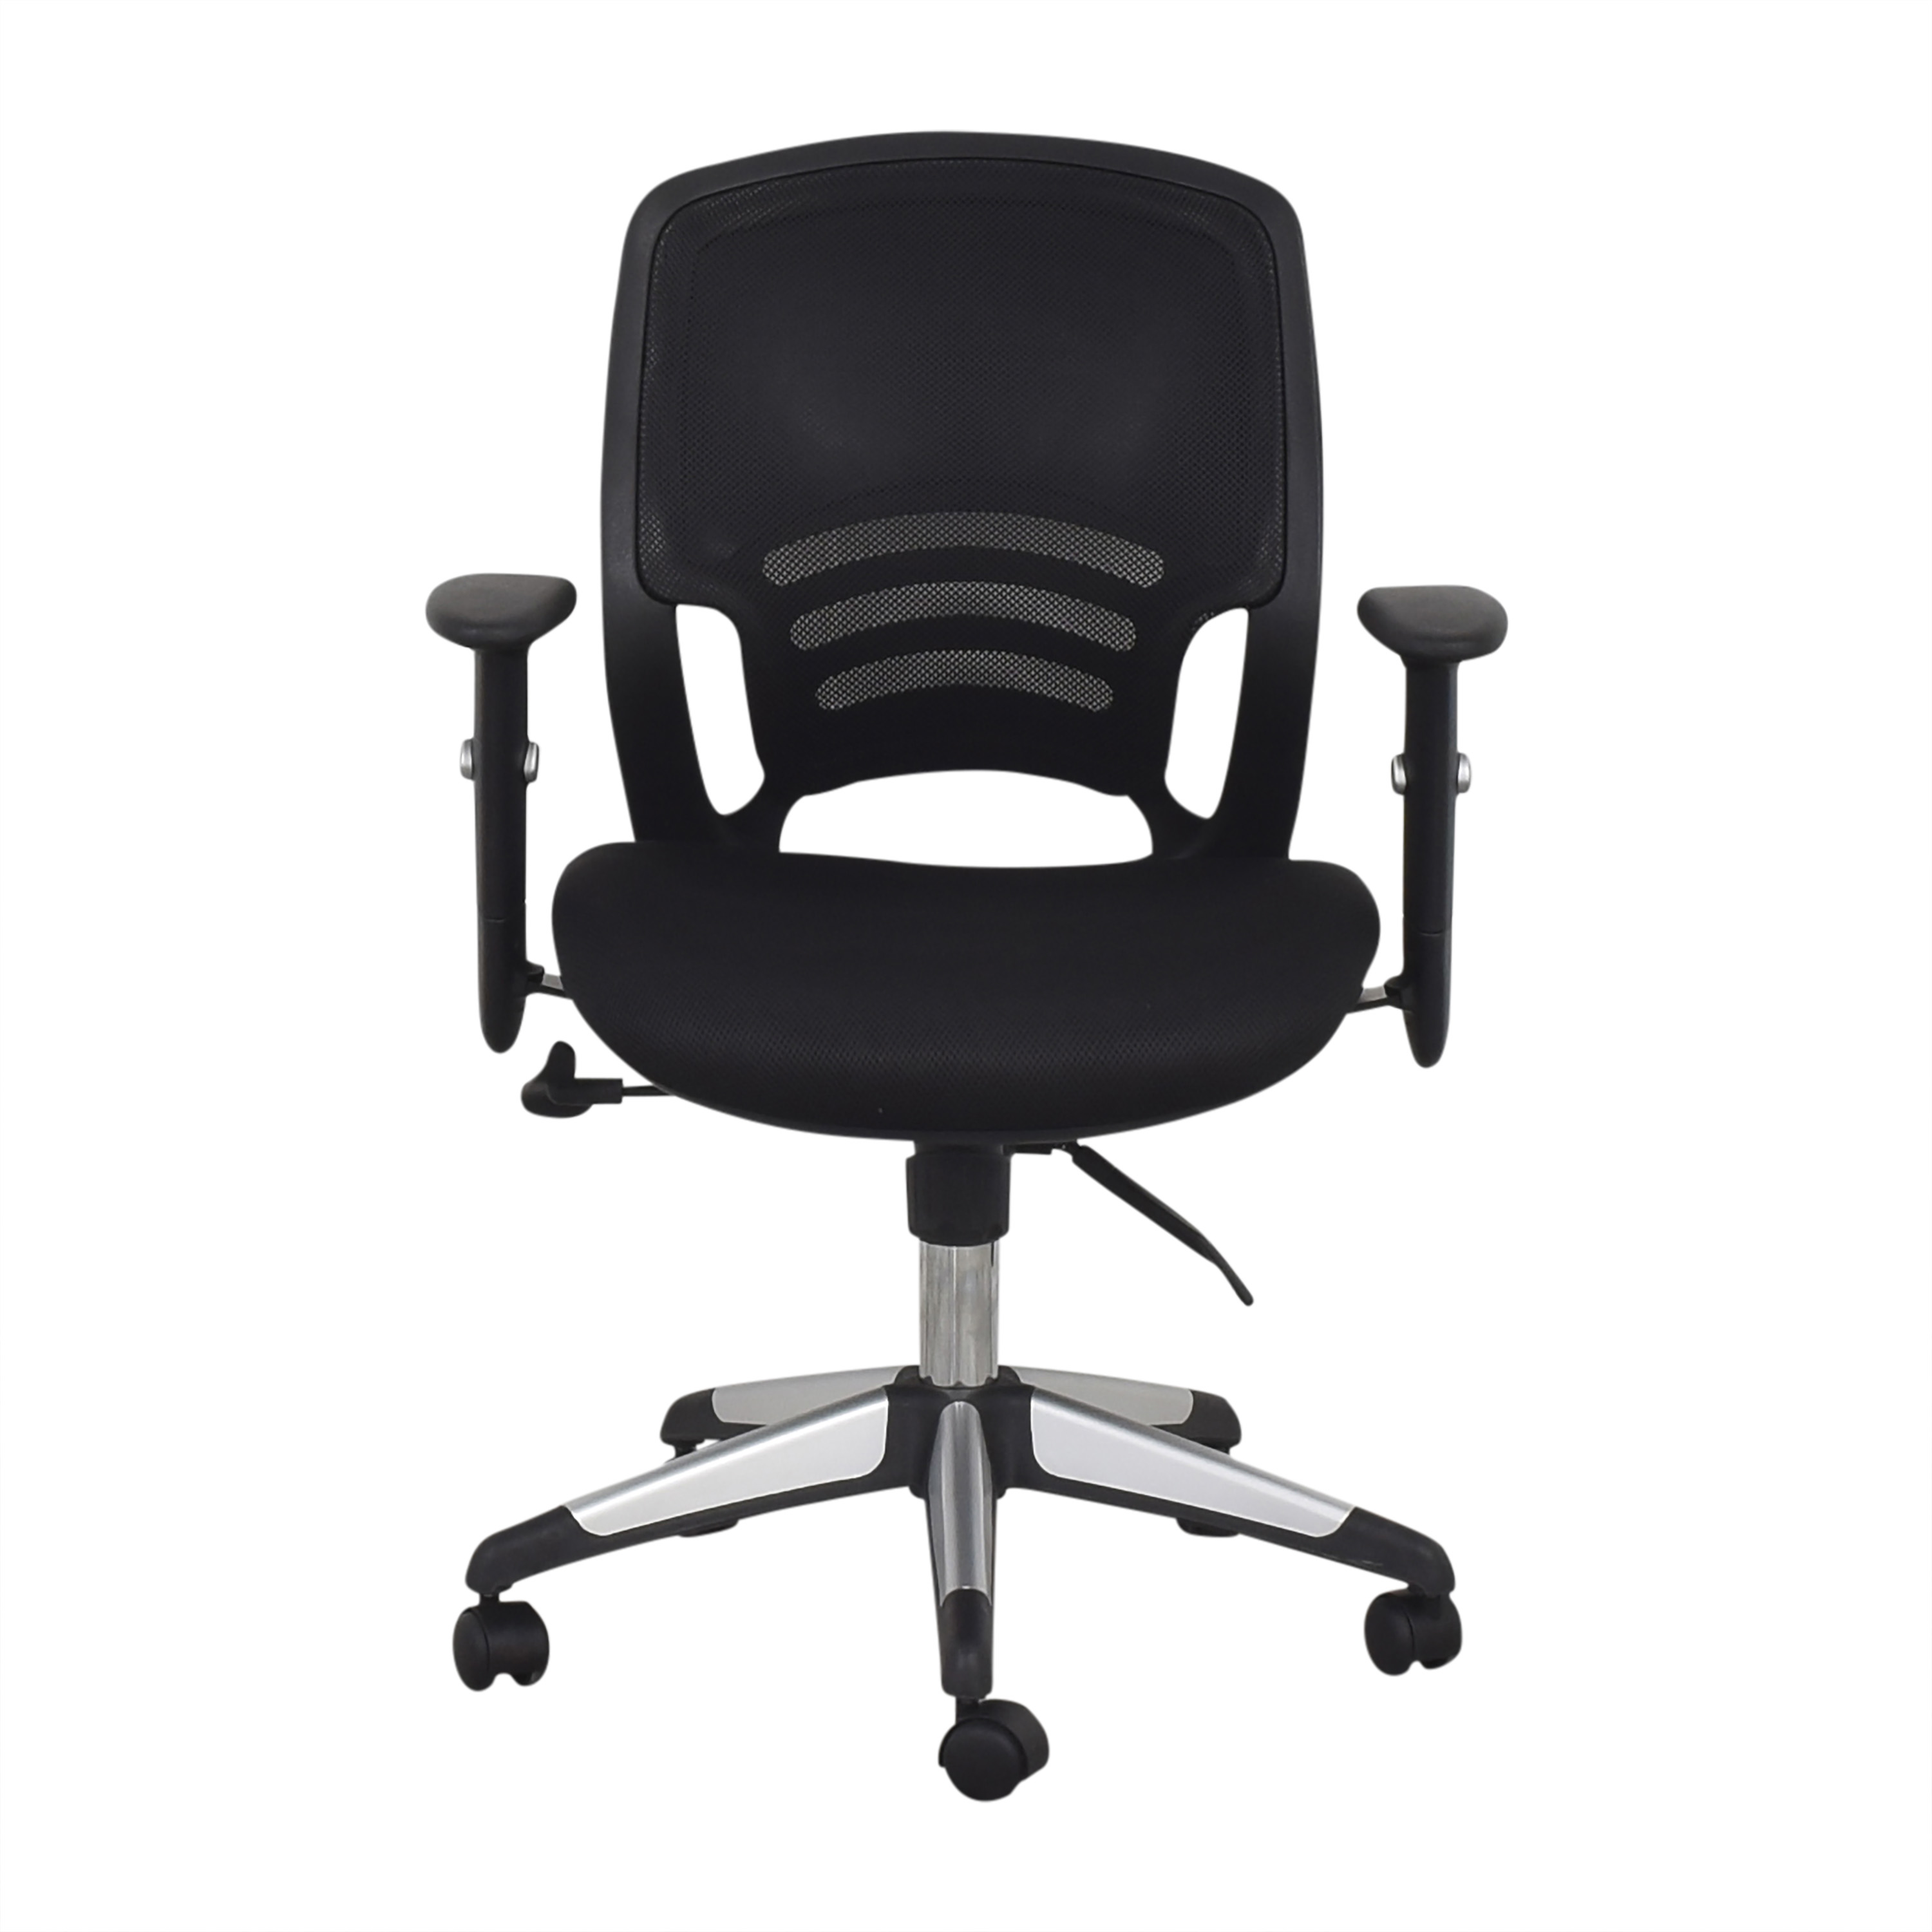 Offices to Go Offices to Go Mid Back Mesh Back Synchro-Tilter Office Chair